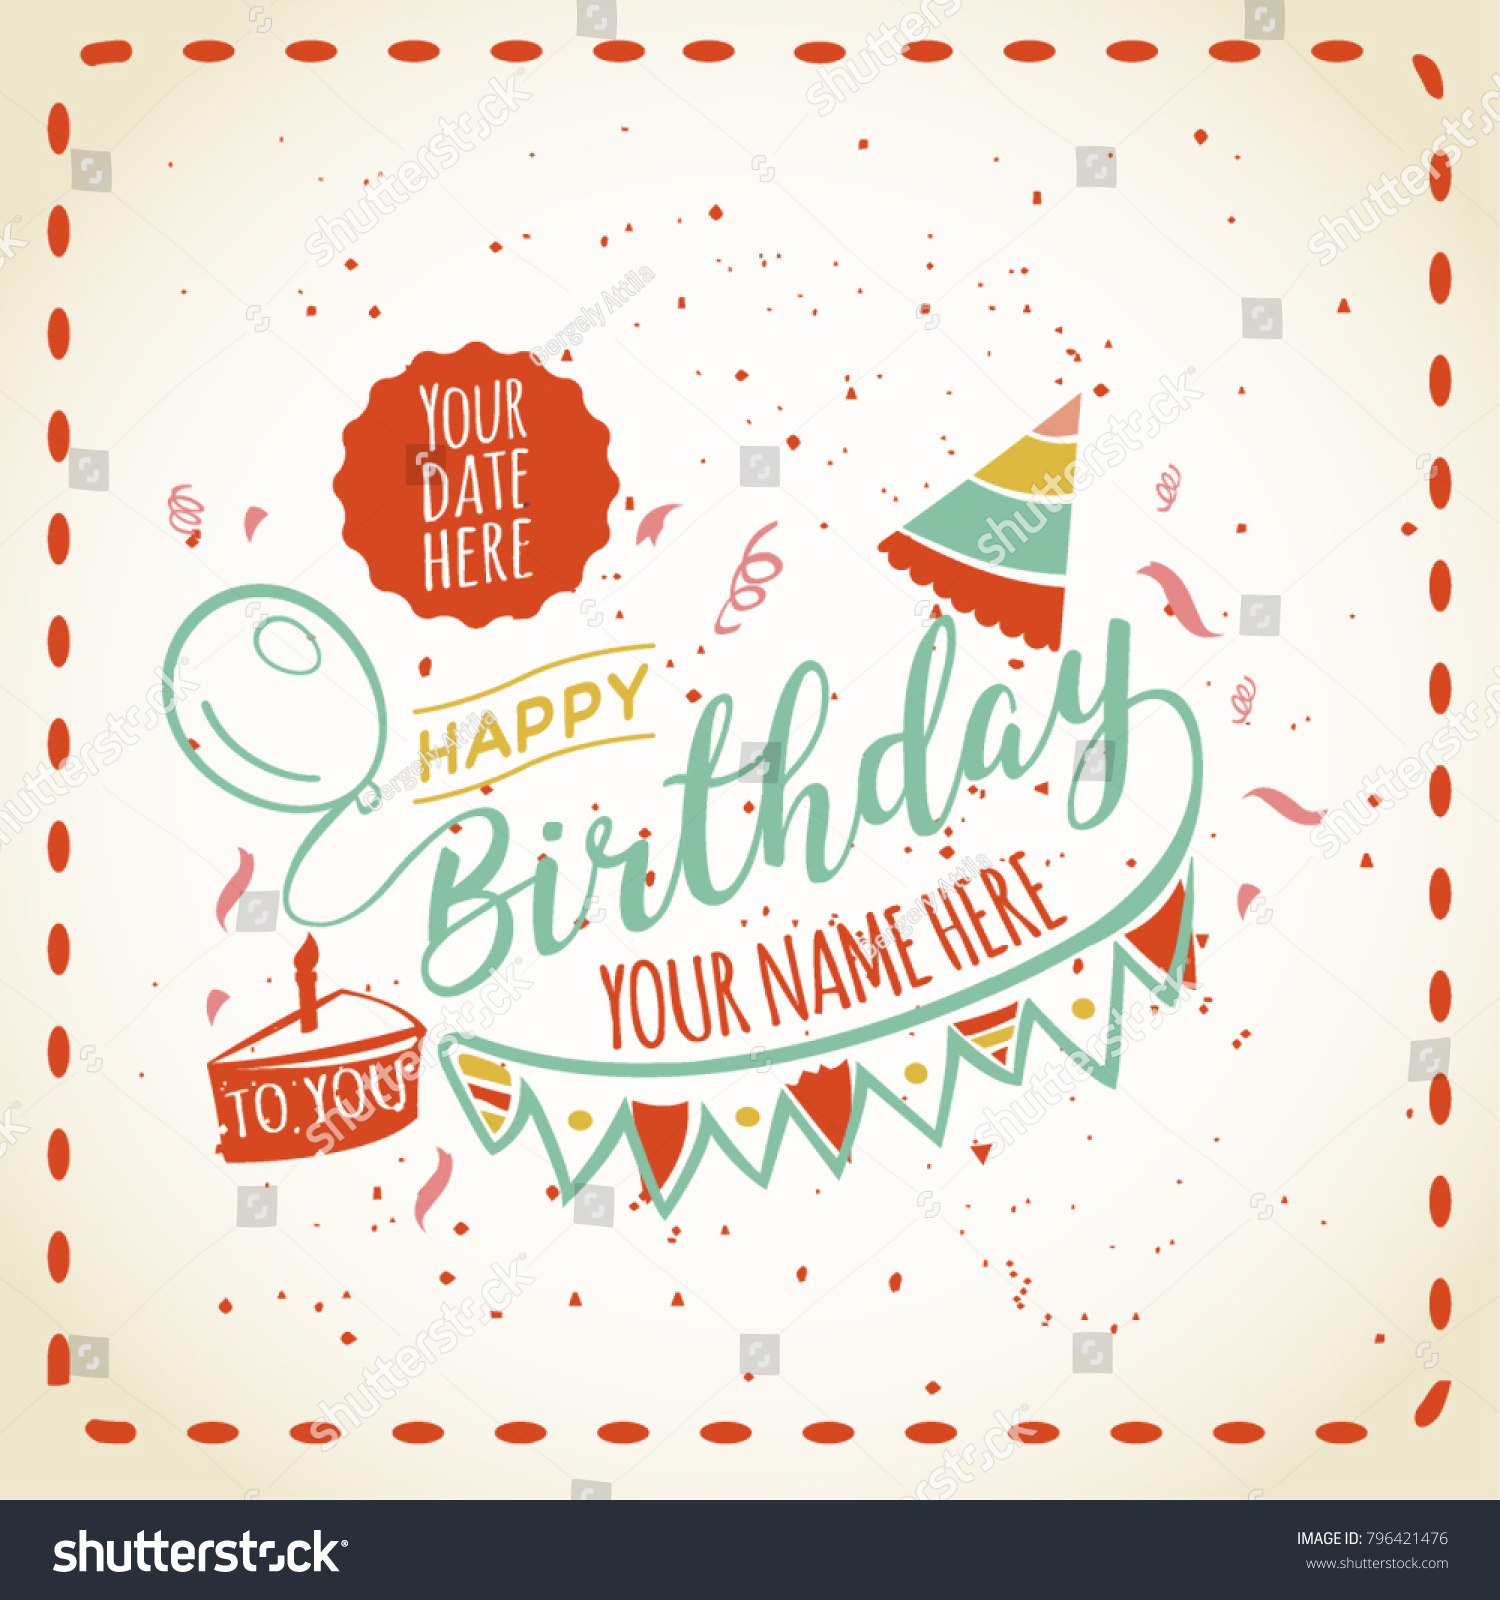 Awe Inspiring Happy Birthday Card Space Your Name Stock Vector Royalty Free Funny Birthday Cards Online Sheoxdamsfinfo